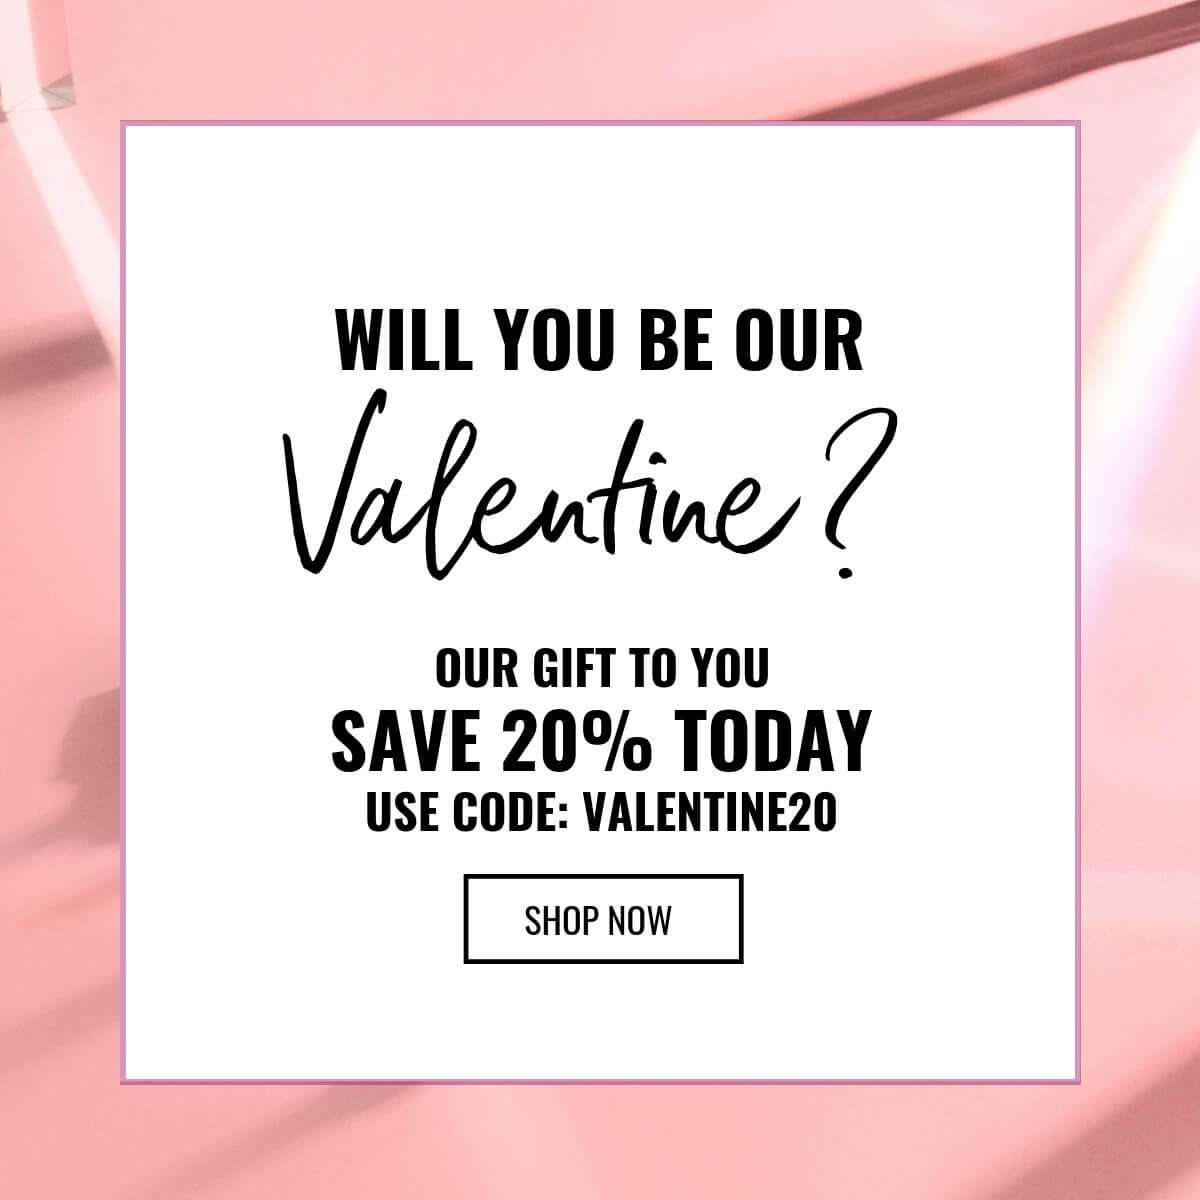 Our Gift To You | Save 20%